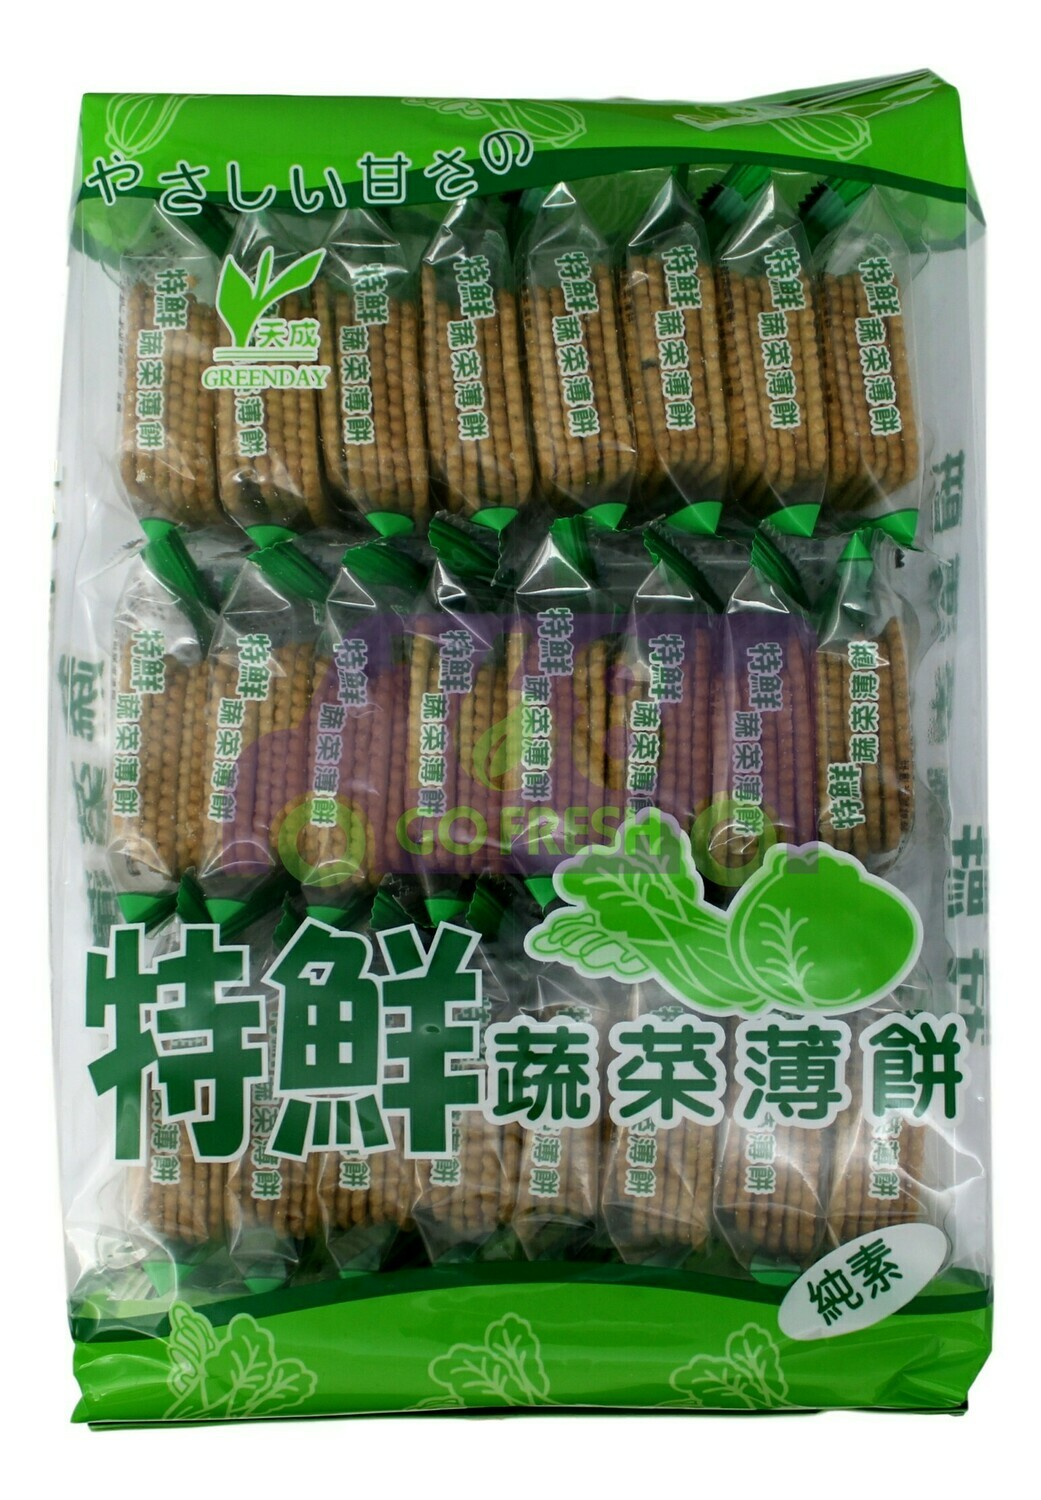 VEGETABLE BISCUITS 天成 特鲜蔬菜薄饼(300G)